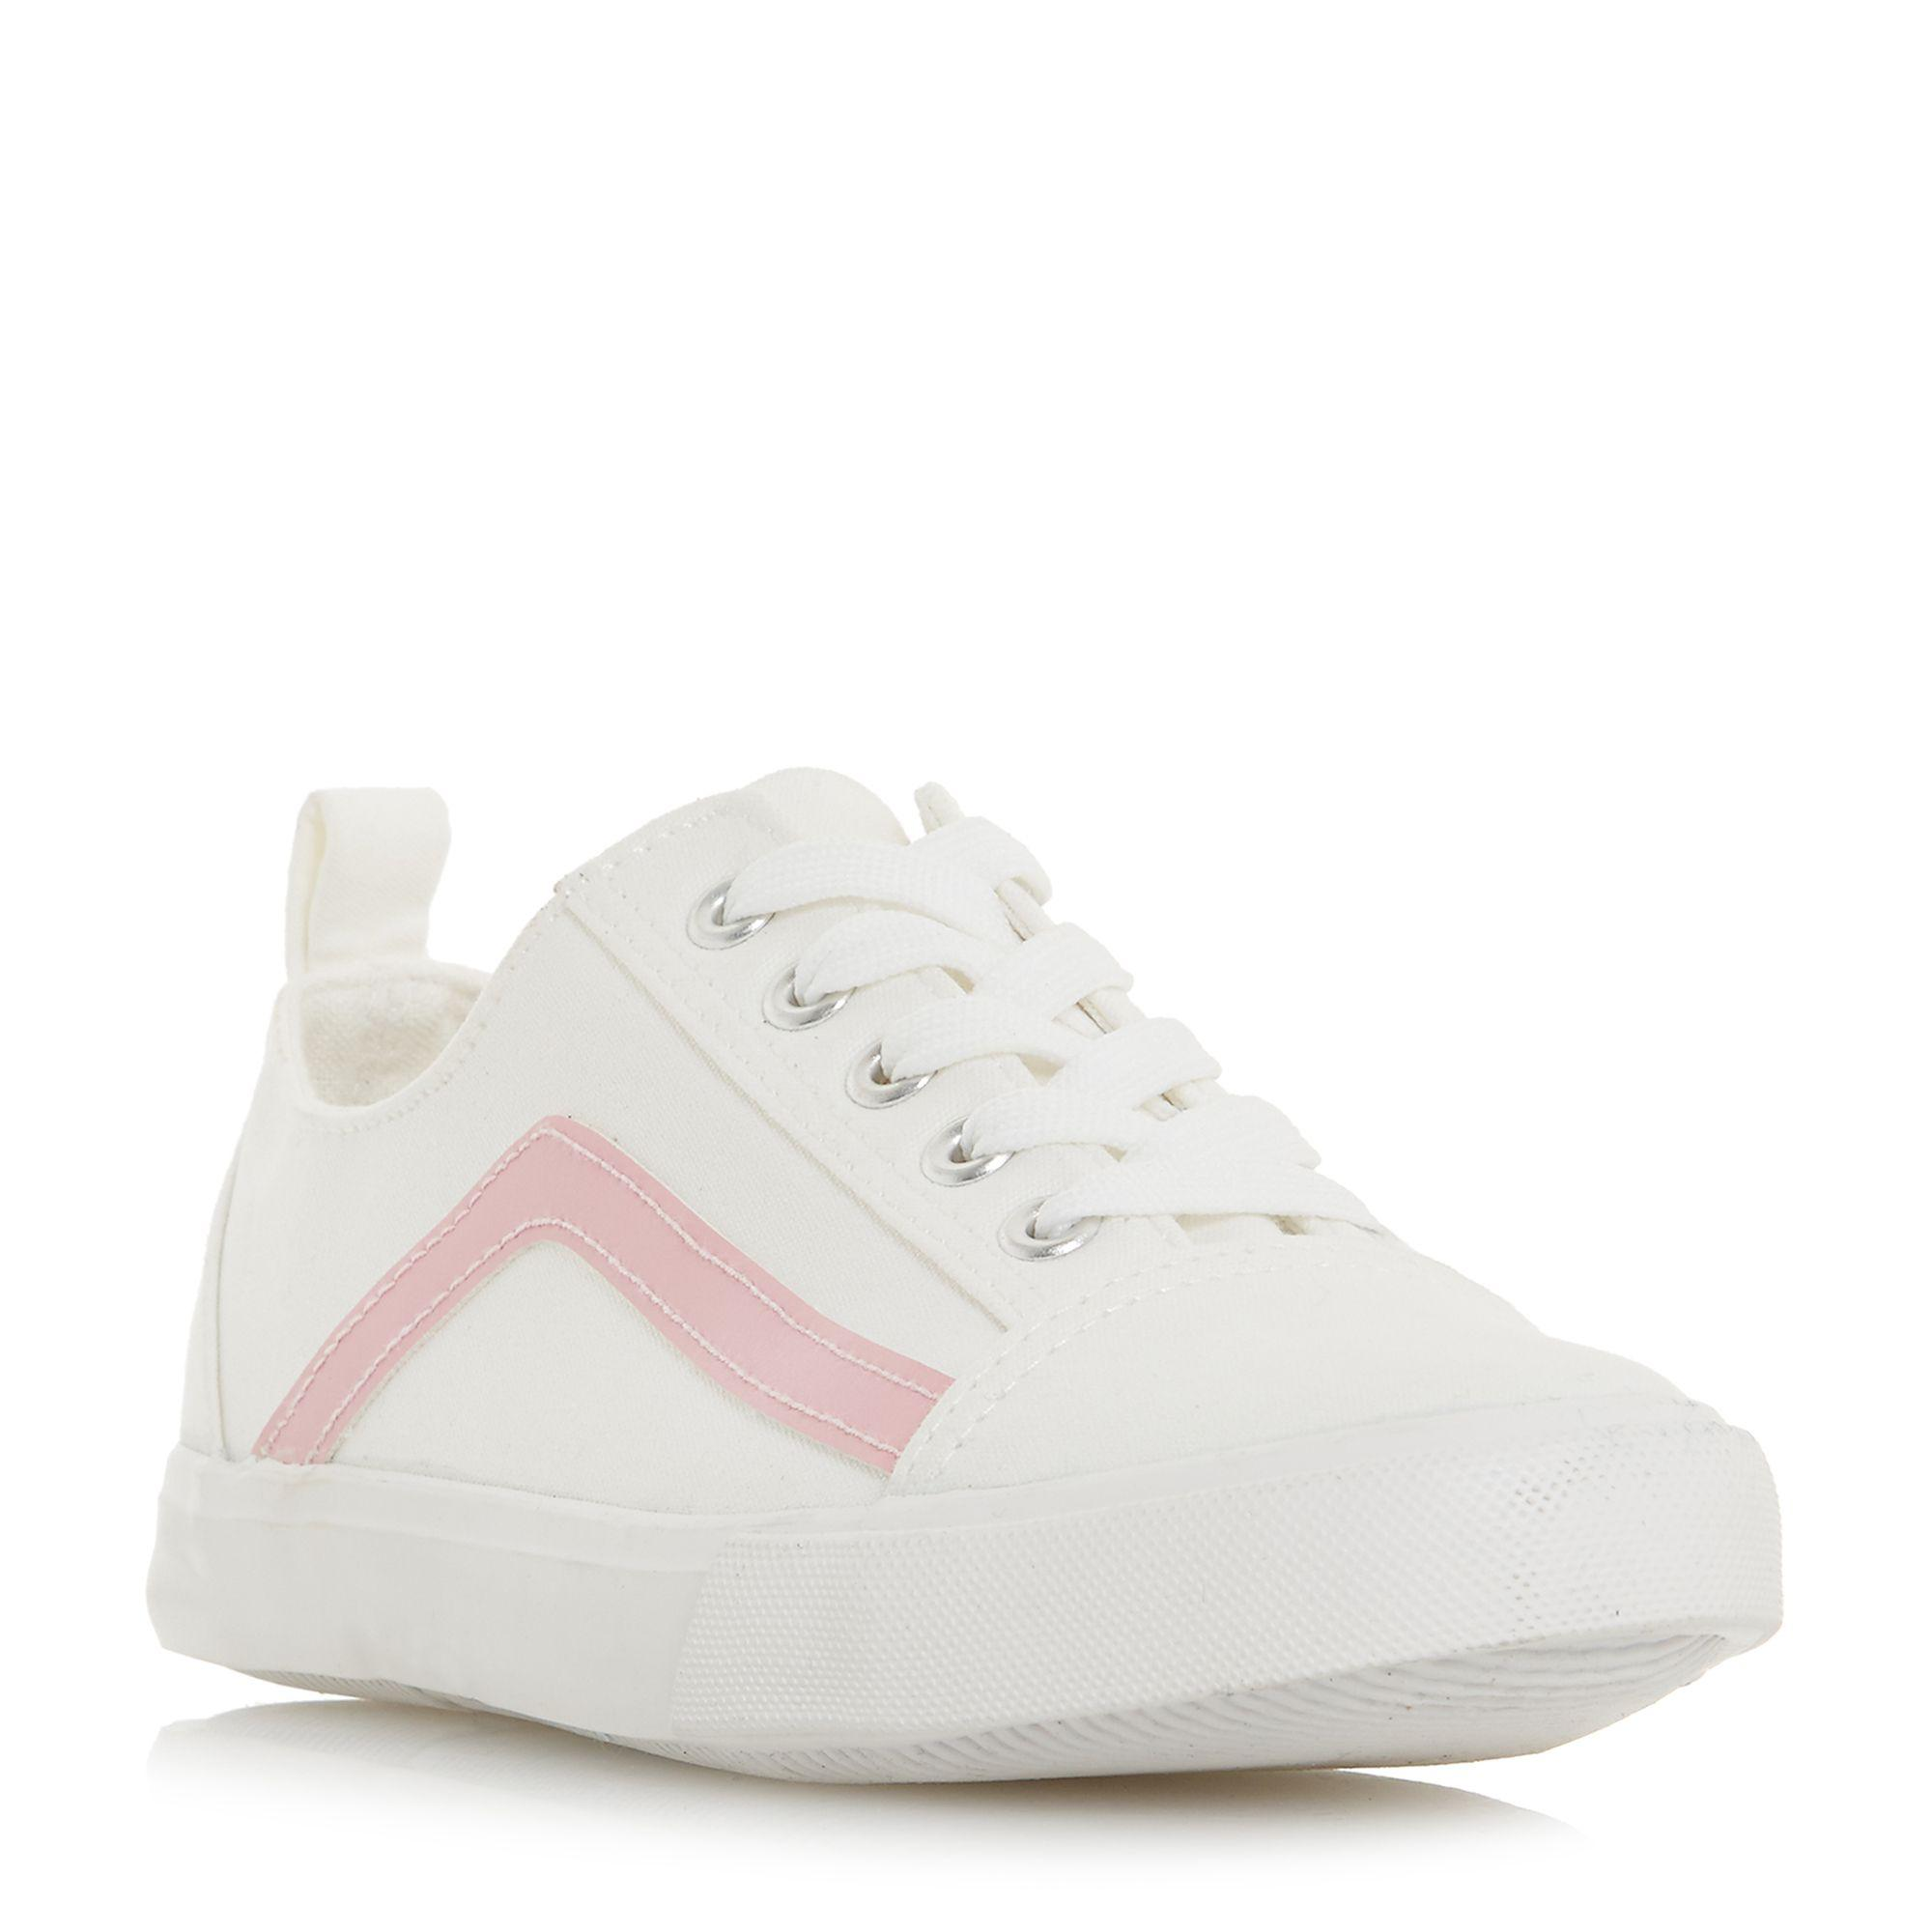 0f0383549d7 Dune White Canvas  elate  Lace Up Trainers in White - Lyst